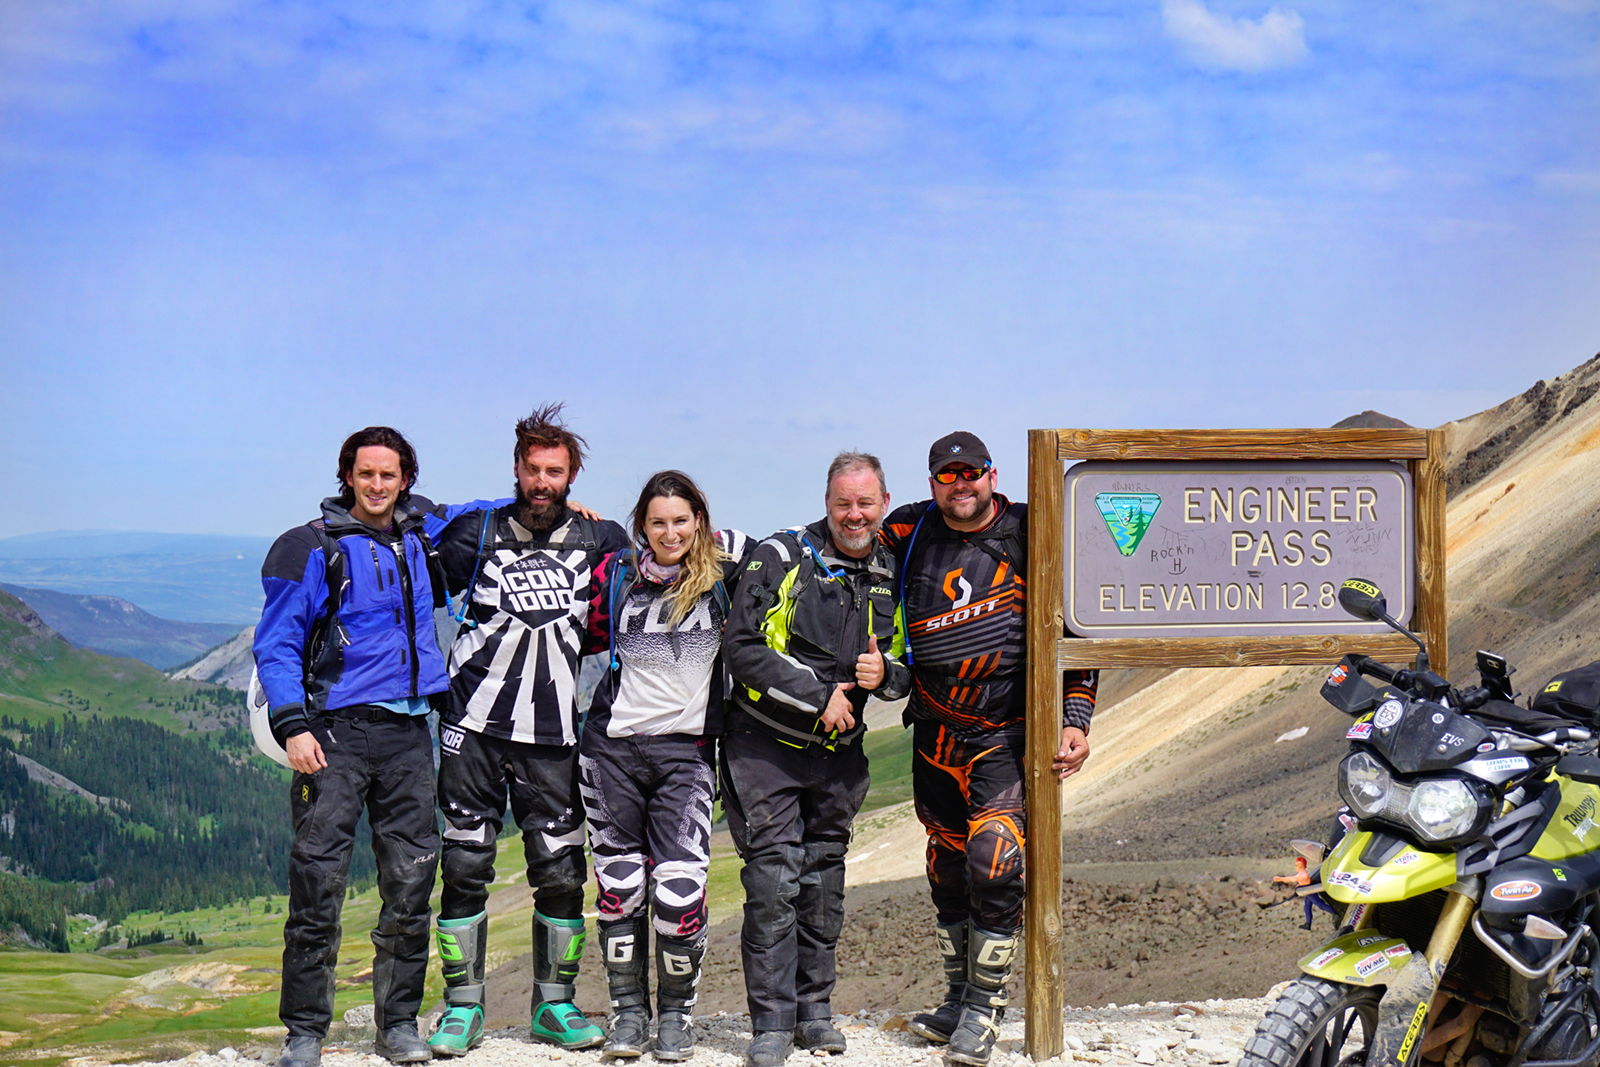 (Right to Left)Carlos Barrios, Steve Kamrad, Amelia Kamrad, Ron Willie and Marcin Suchodolski shown at Engineer Pass, Colorado. Day 3 of our 6.5 day trip.